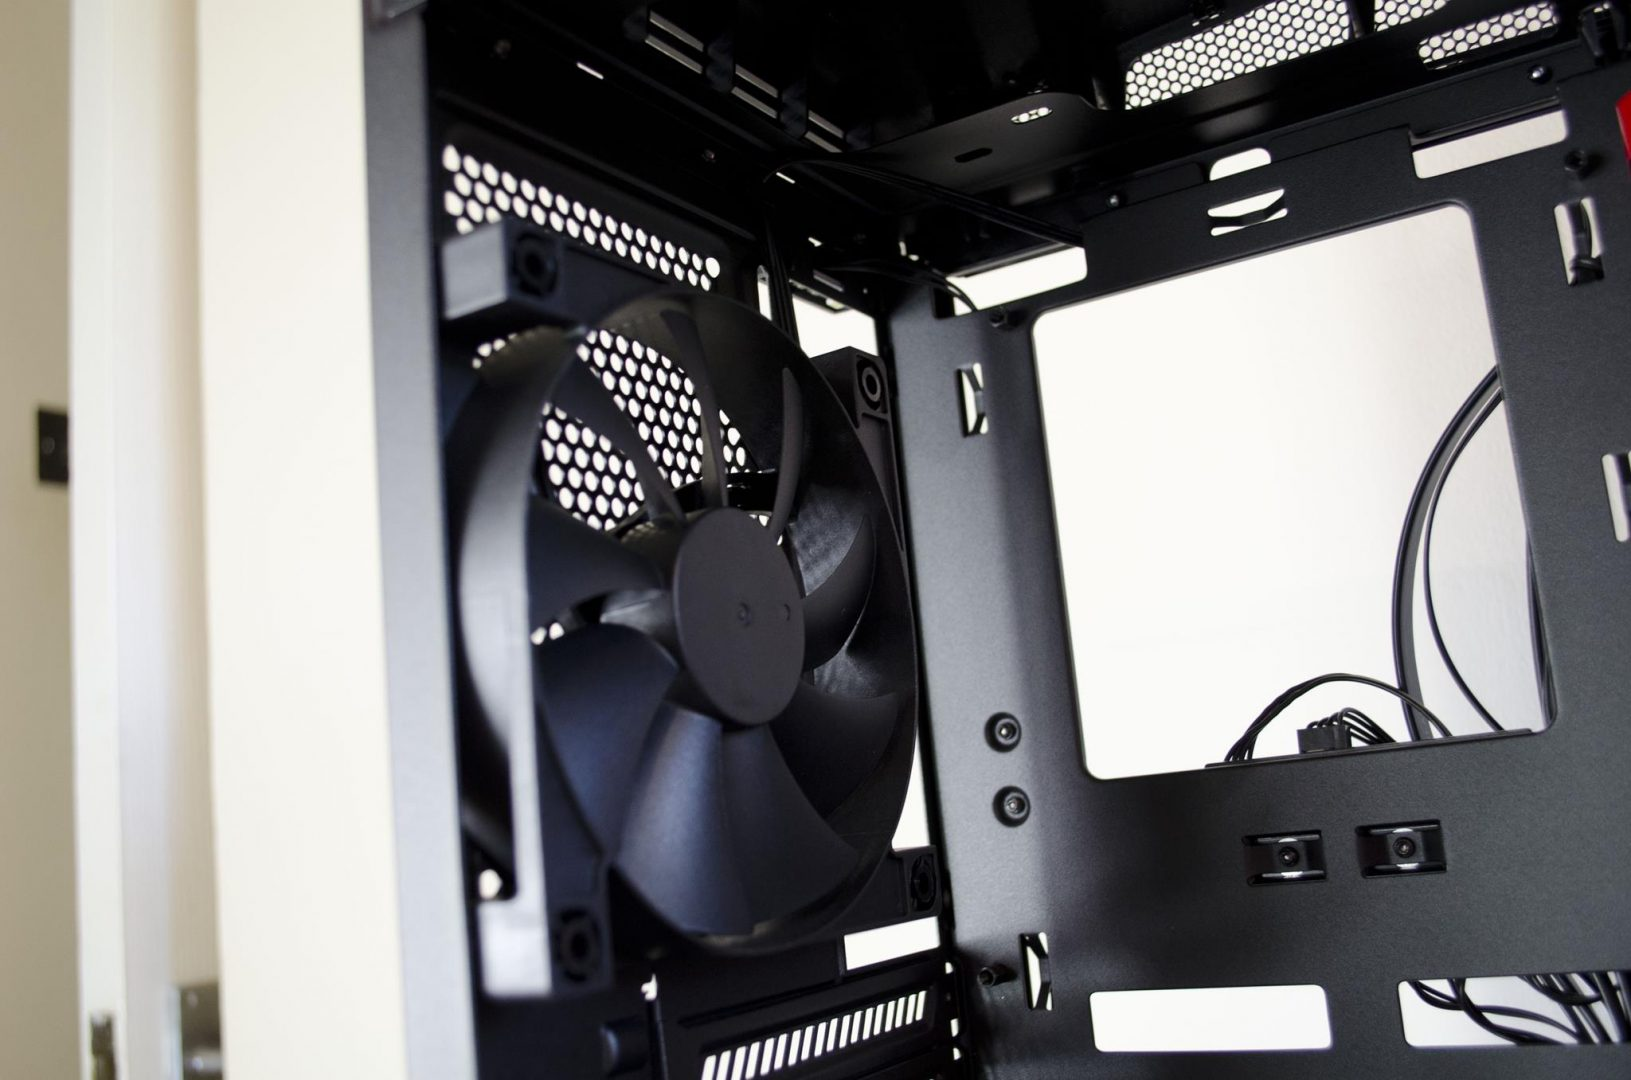 nzxt manta pc case review_9